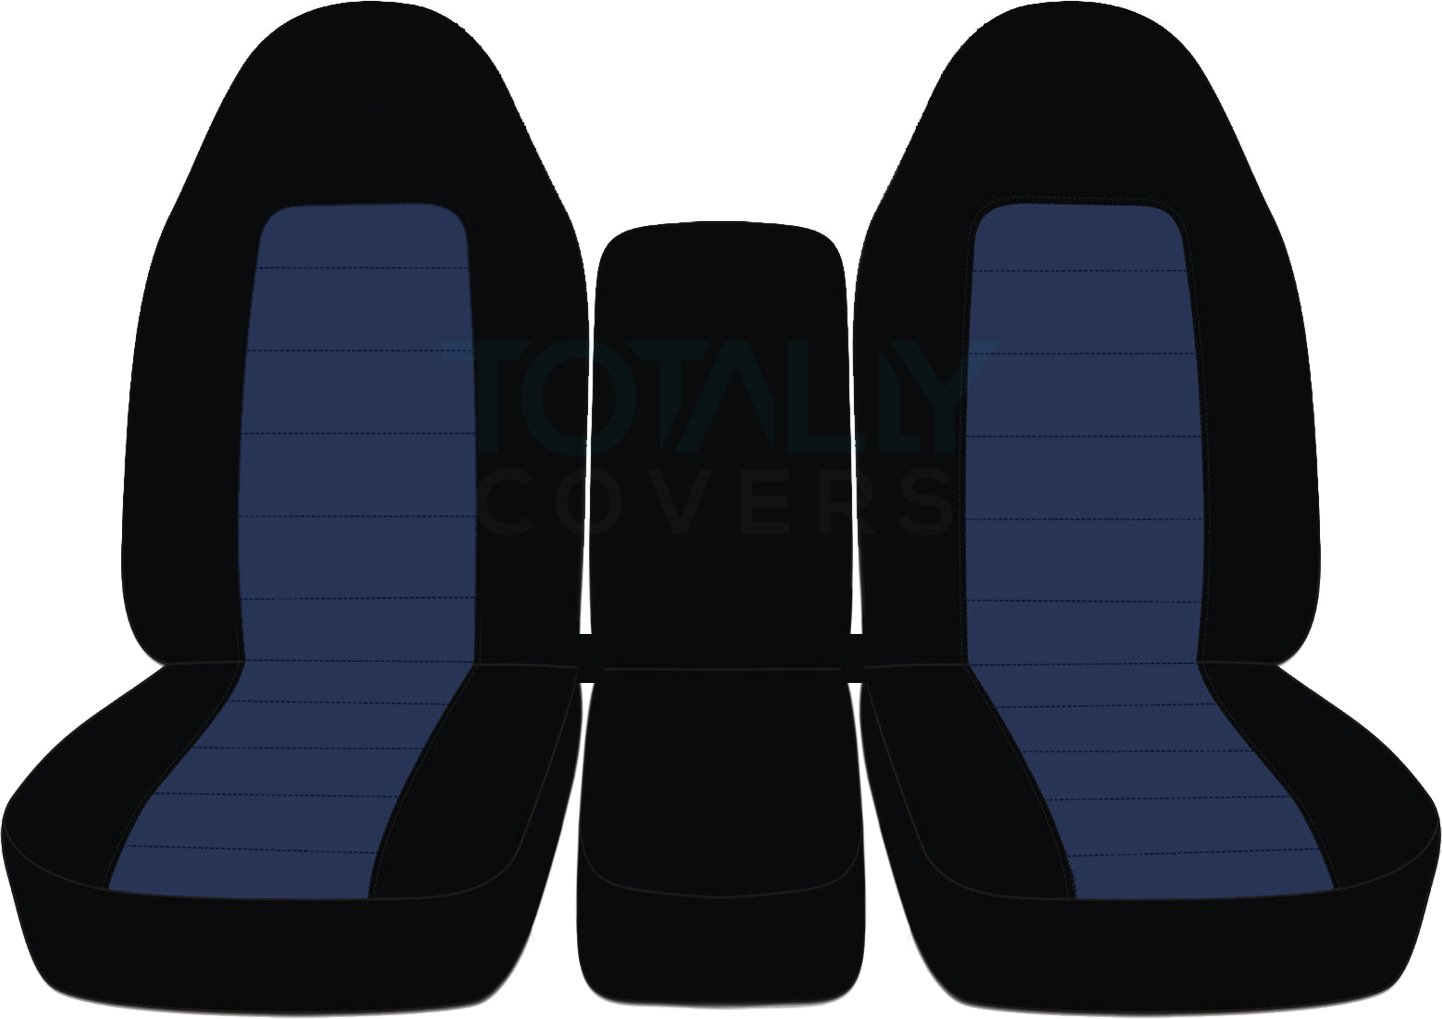 1994-2002 (2nd Gen) Dodge Ram Two-Tone Truck Seat Covers (40/20/40 Split Bench) w Center Console - Front: Black & Charcoal (21 Colors) 1995 1996 1997 1998 1999 2000 2001 w/wo Integrated Belts Designcovers